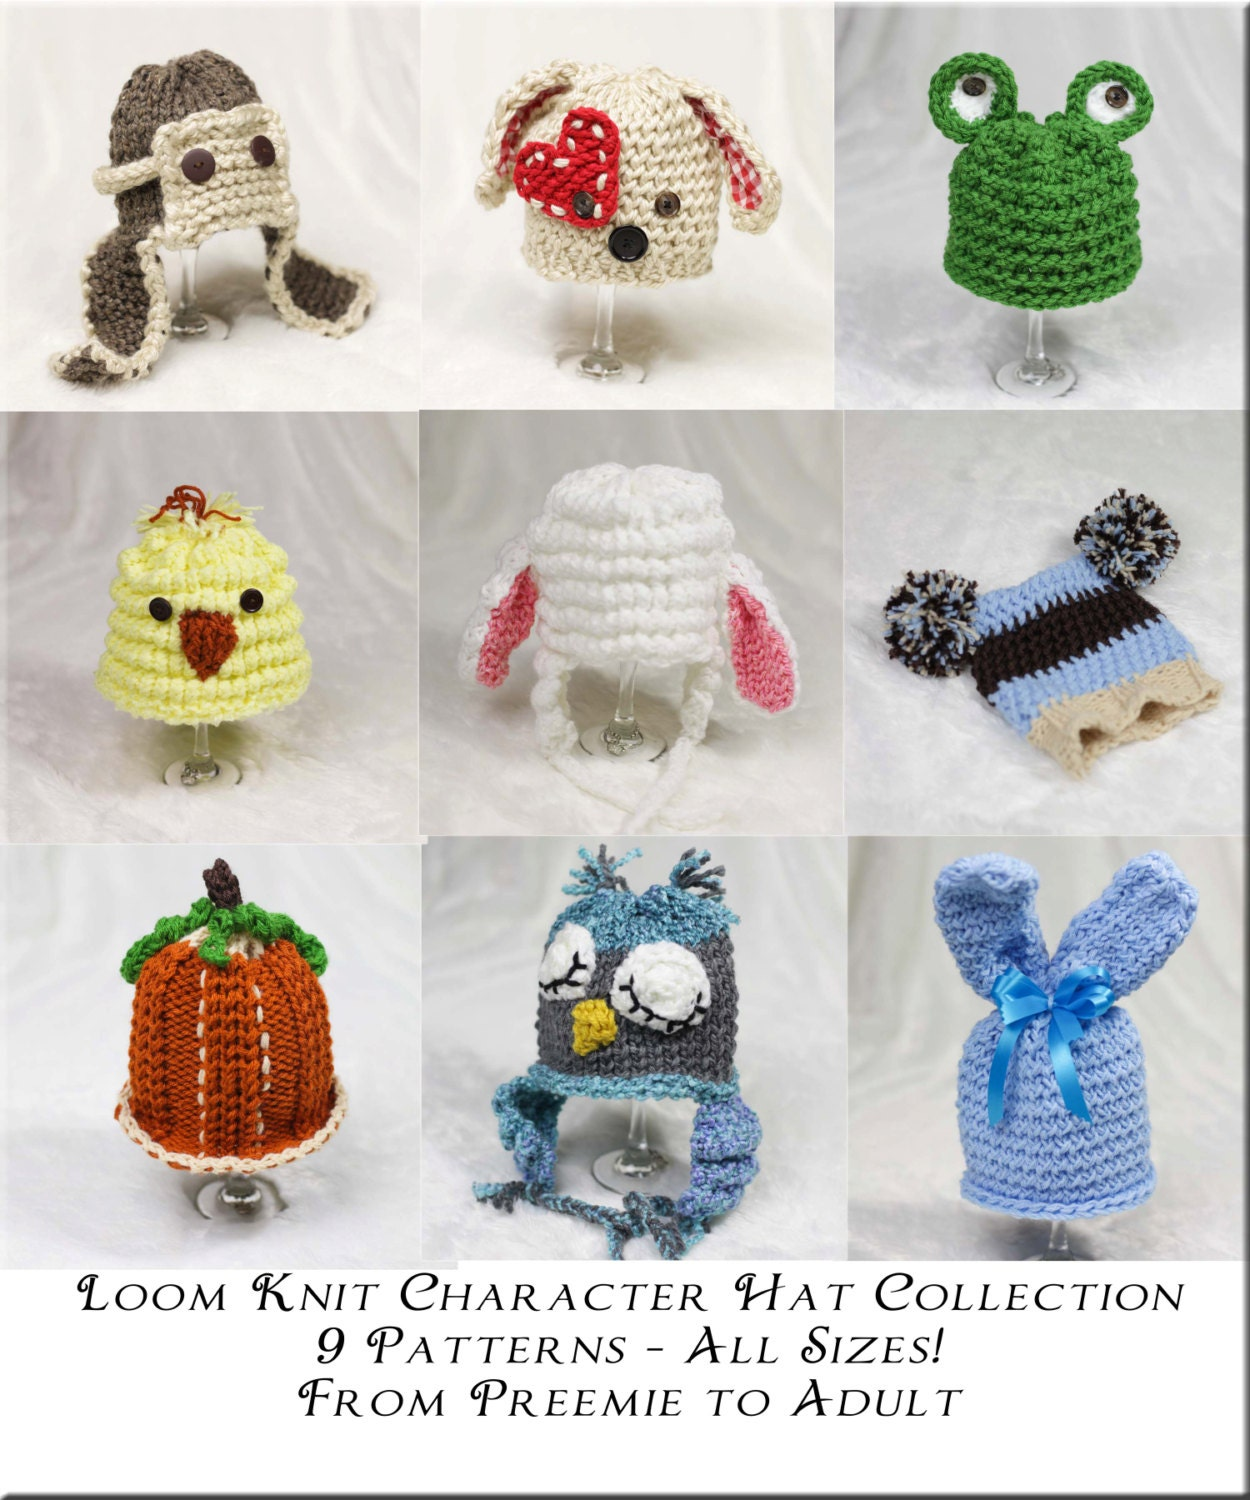 Loom Knit Character Hat PATTERN Collection 9 Adorable